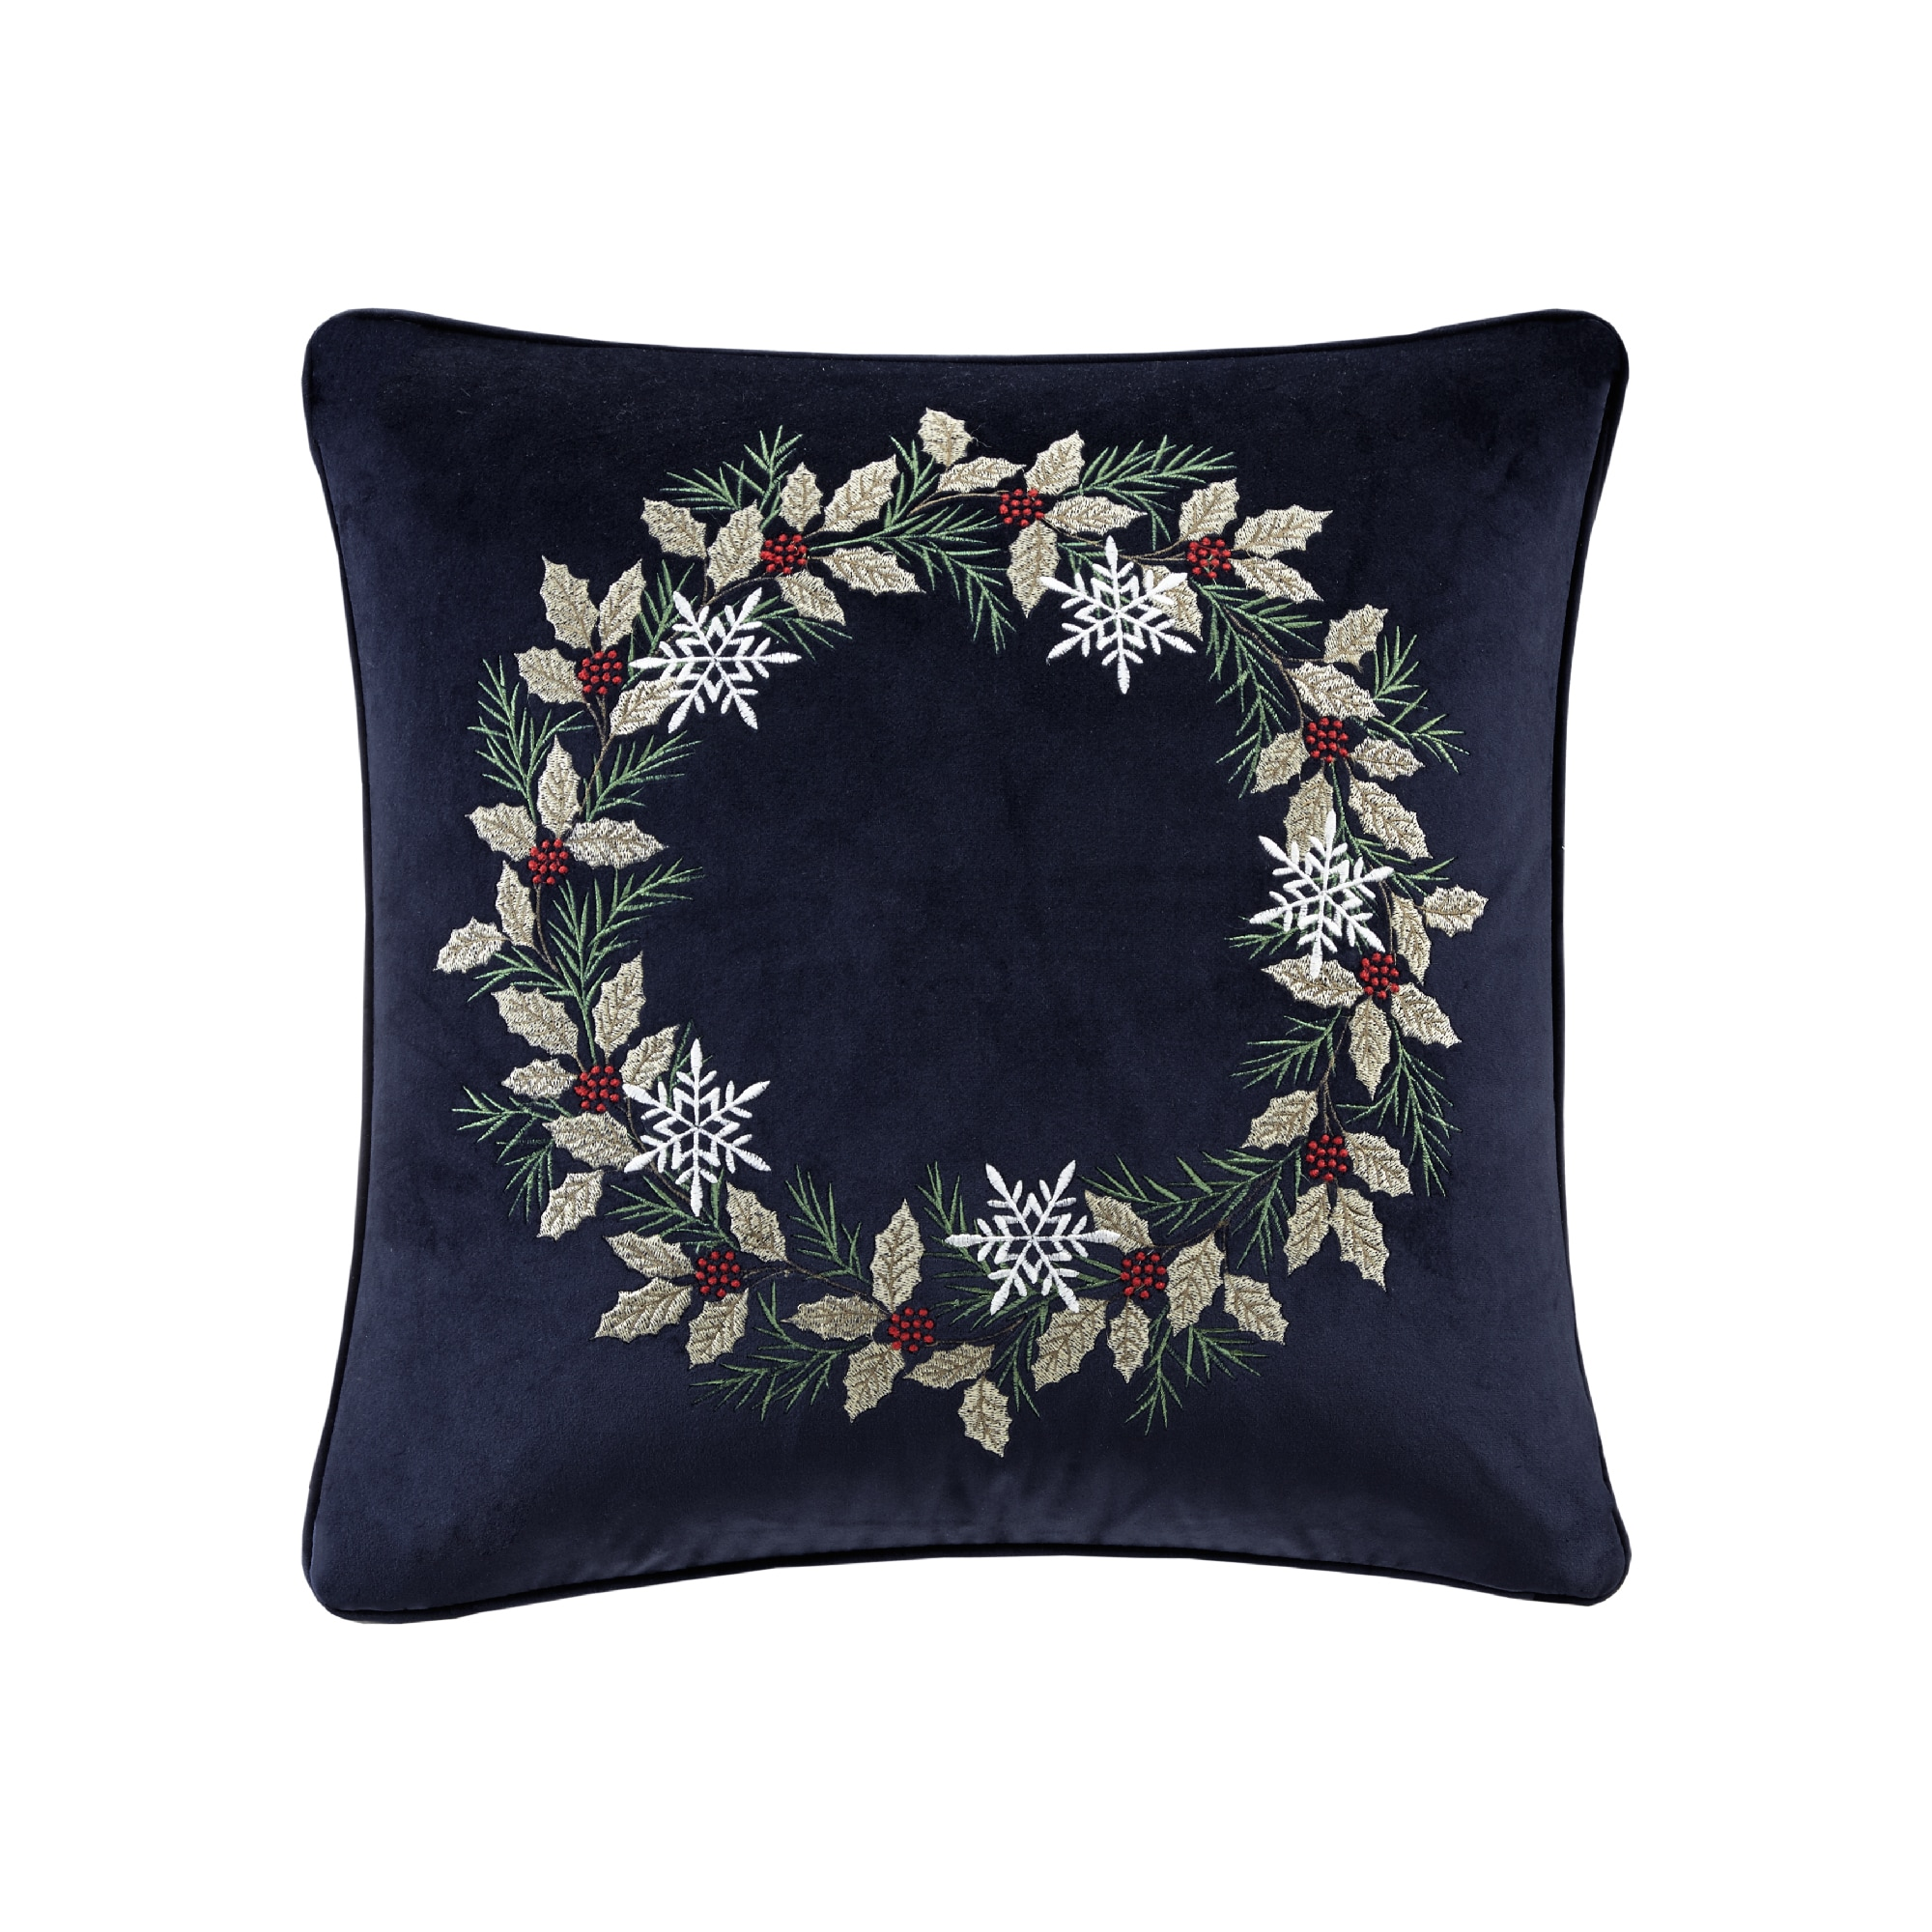 Madison Park Holiday Wreath Navy 20-inch Square Embroidered Decorative Throw  Pillow - Free Shipping On Orders Over $45 - Overstock.com - 24272887